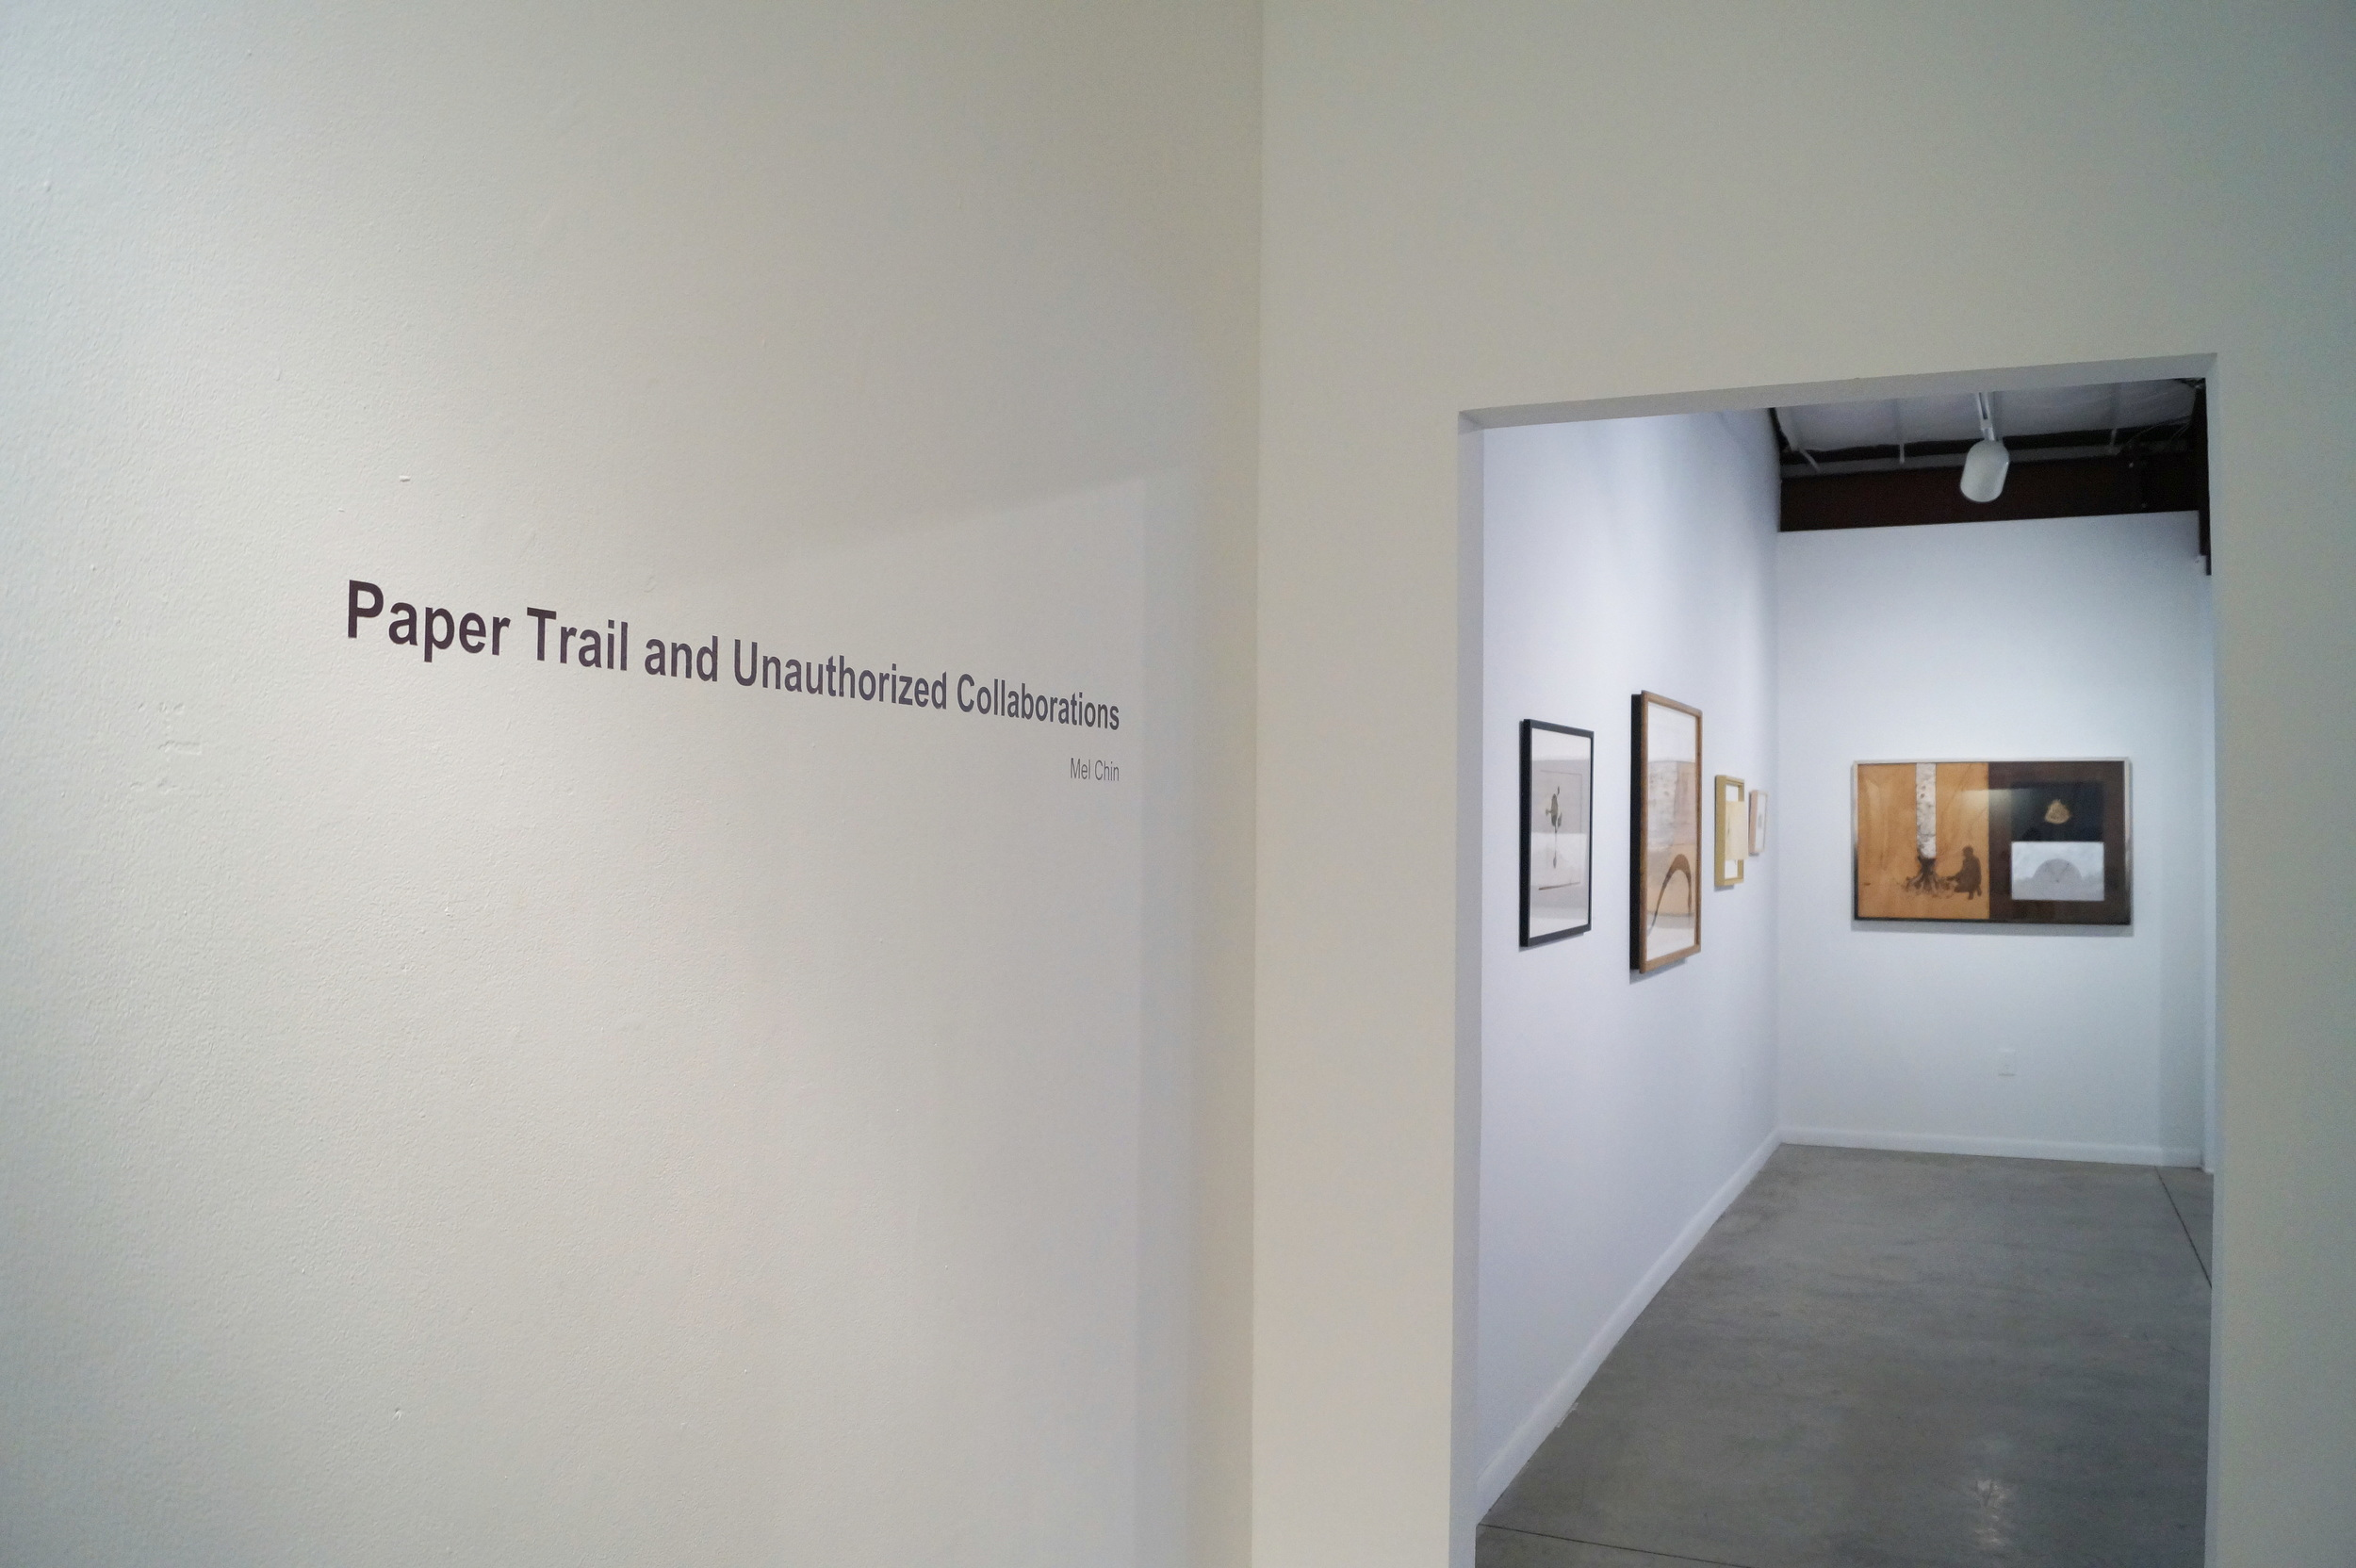 Paper Trail and Unauthorized Collaborations by Mel Chin - Photo by Jennie Ash 5.JPG